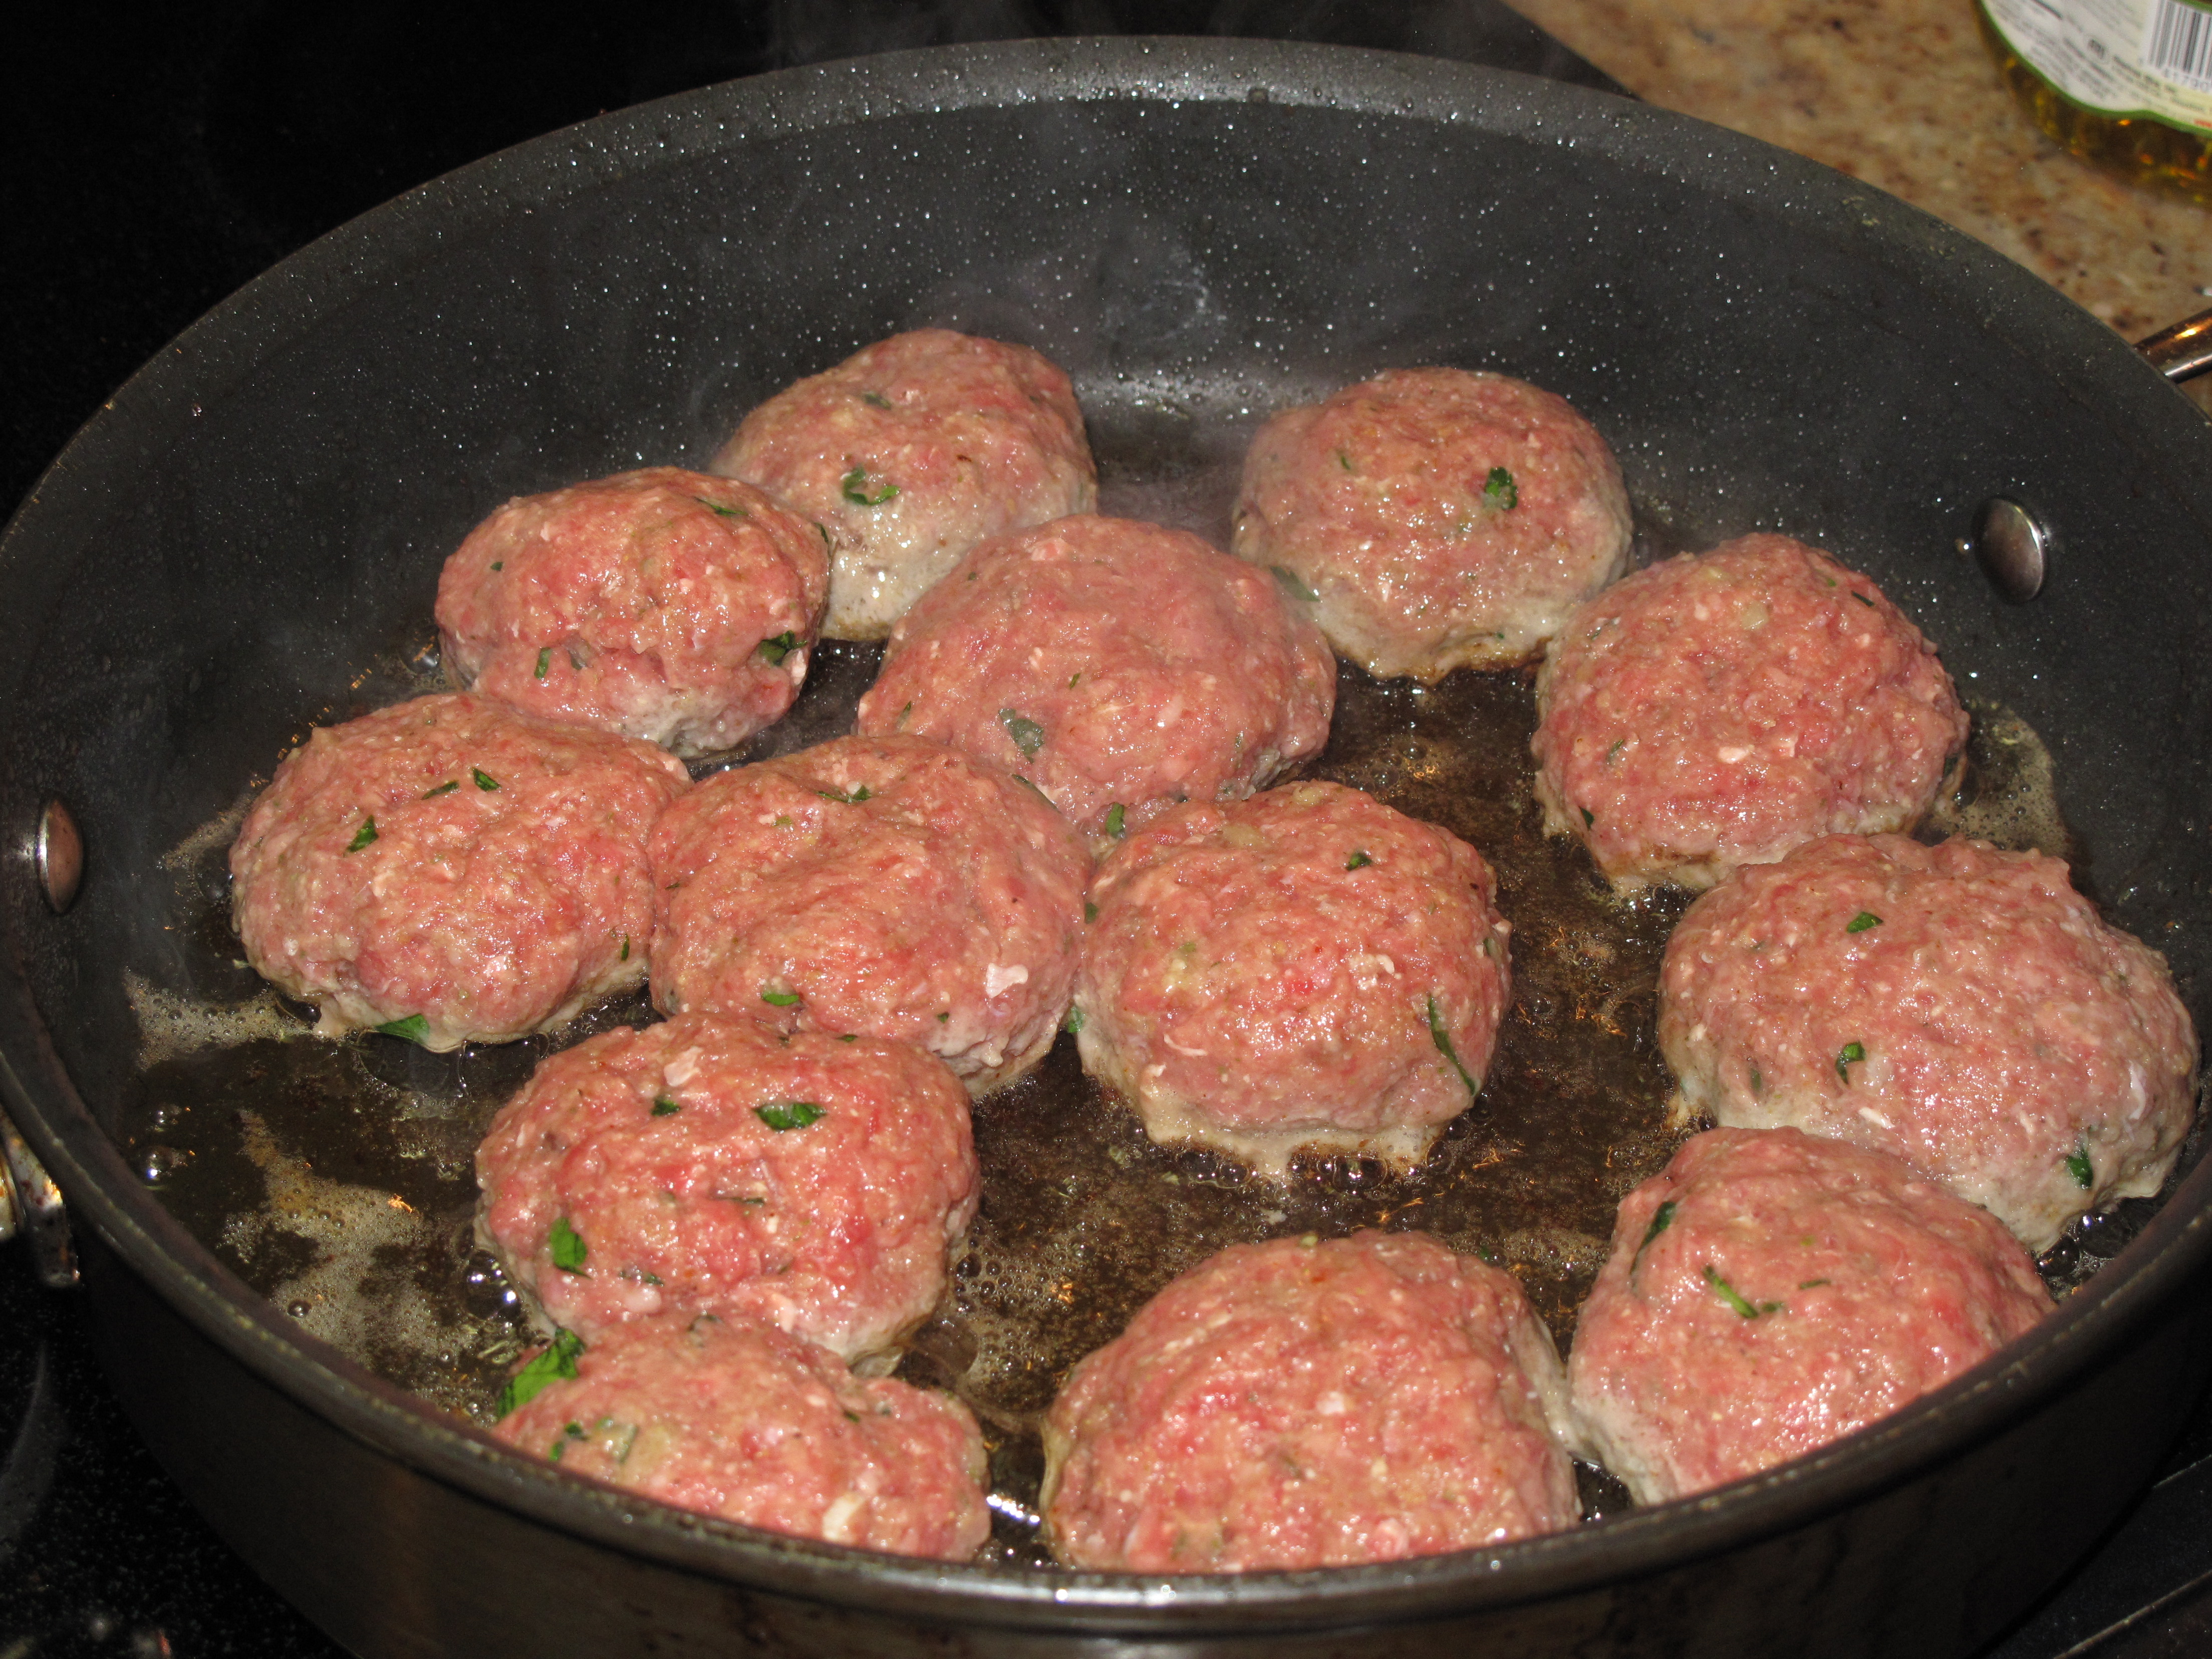 ... to make real italian meatballs based on a recipe from a real italian